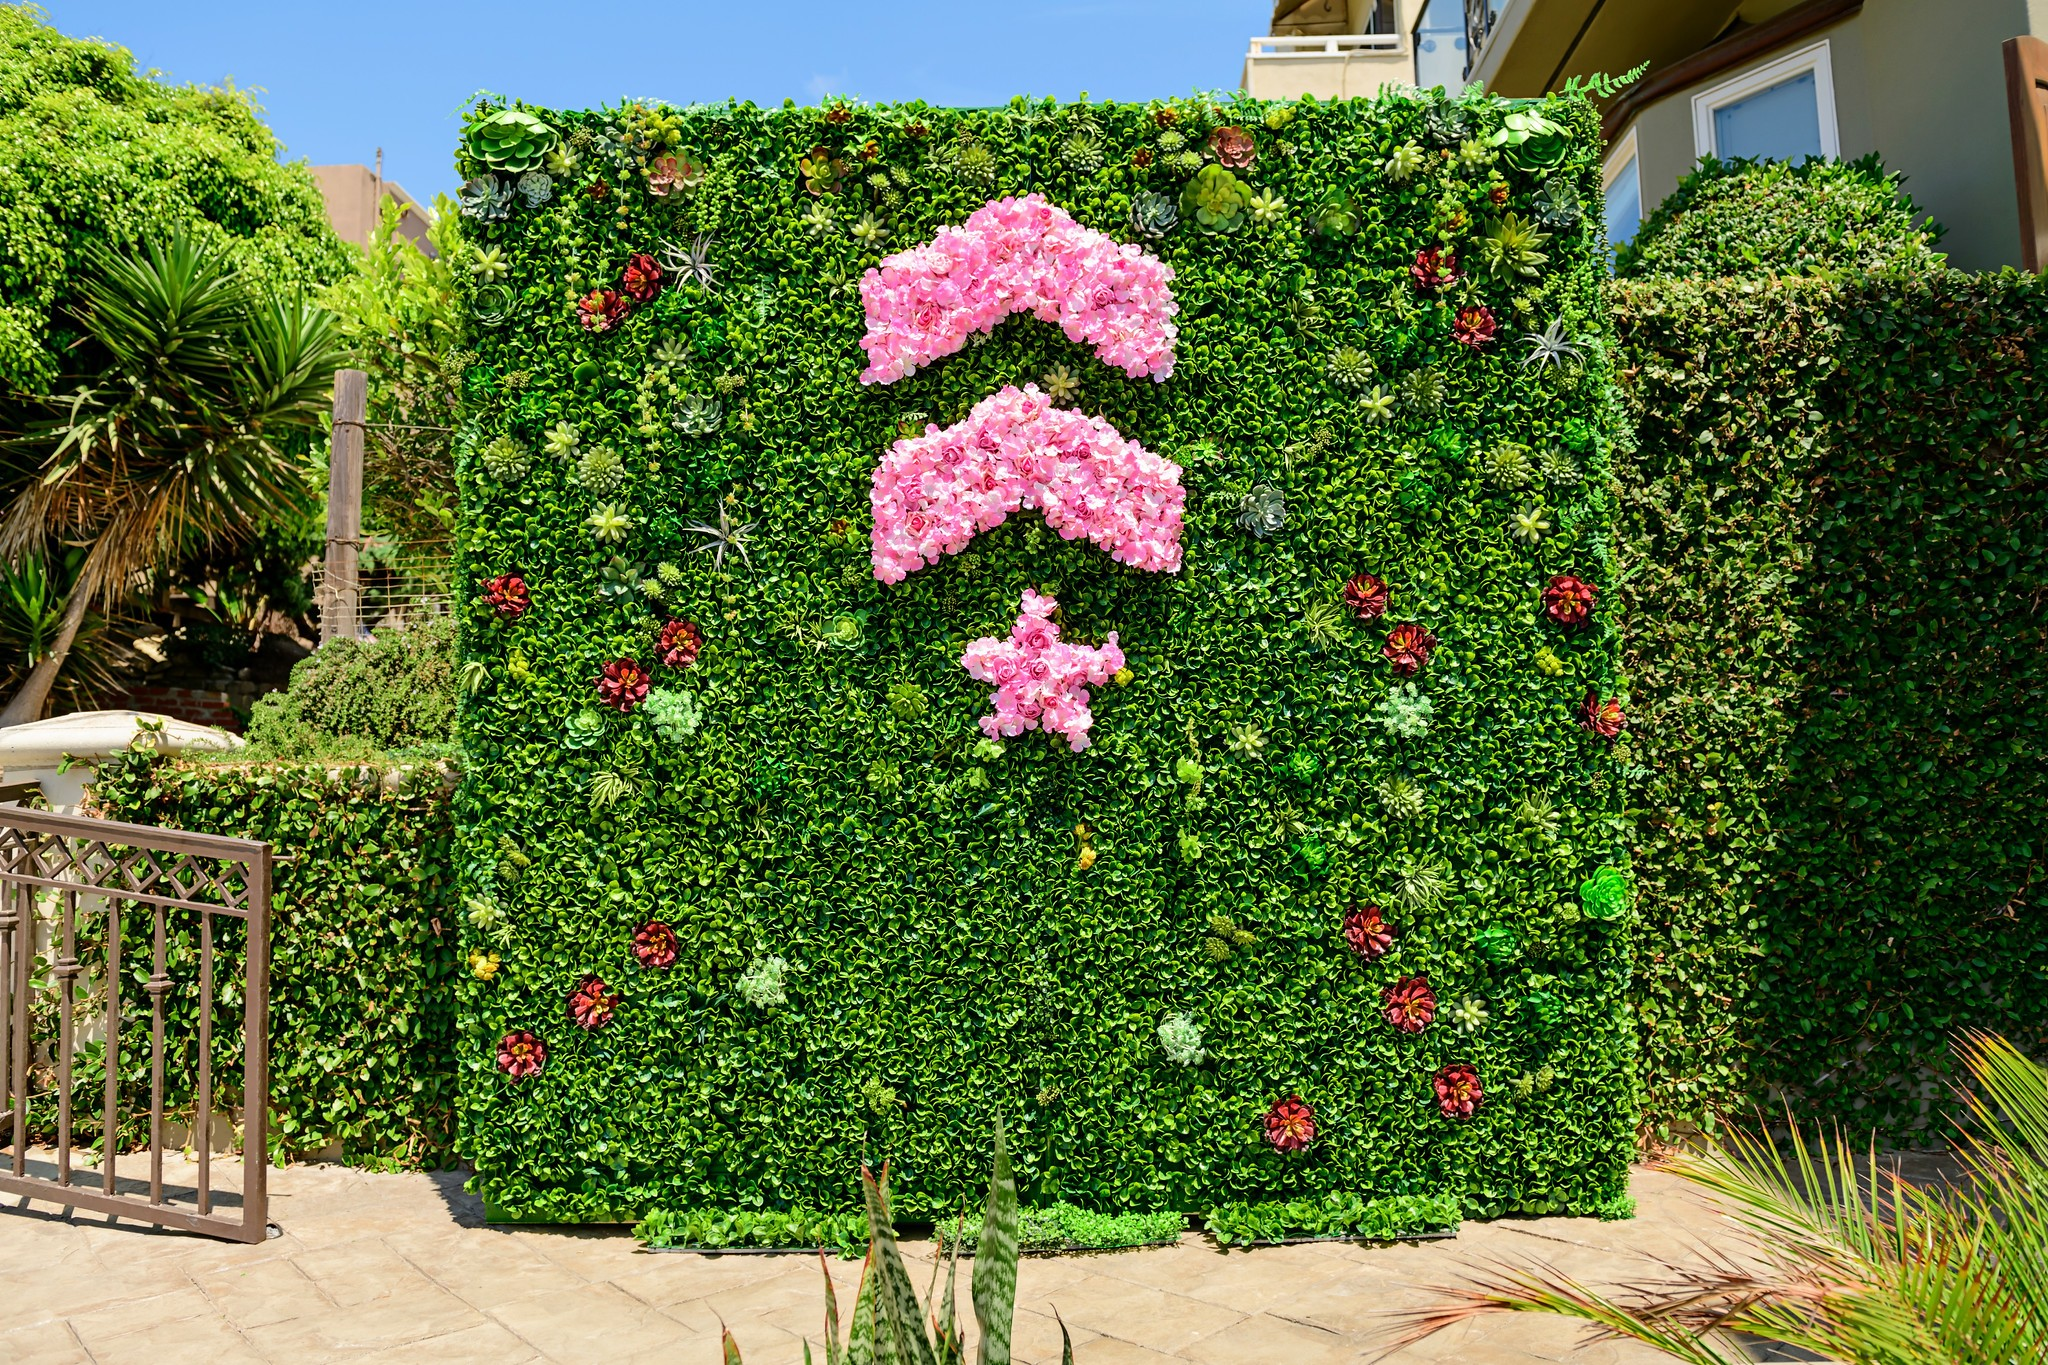 Pink Barry's Bootcamp upward arrows and star logo made of flowers on green living wall